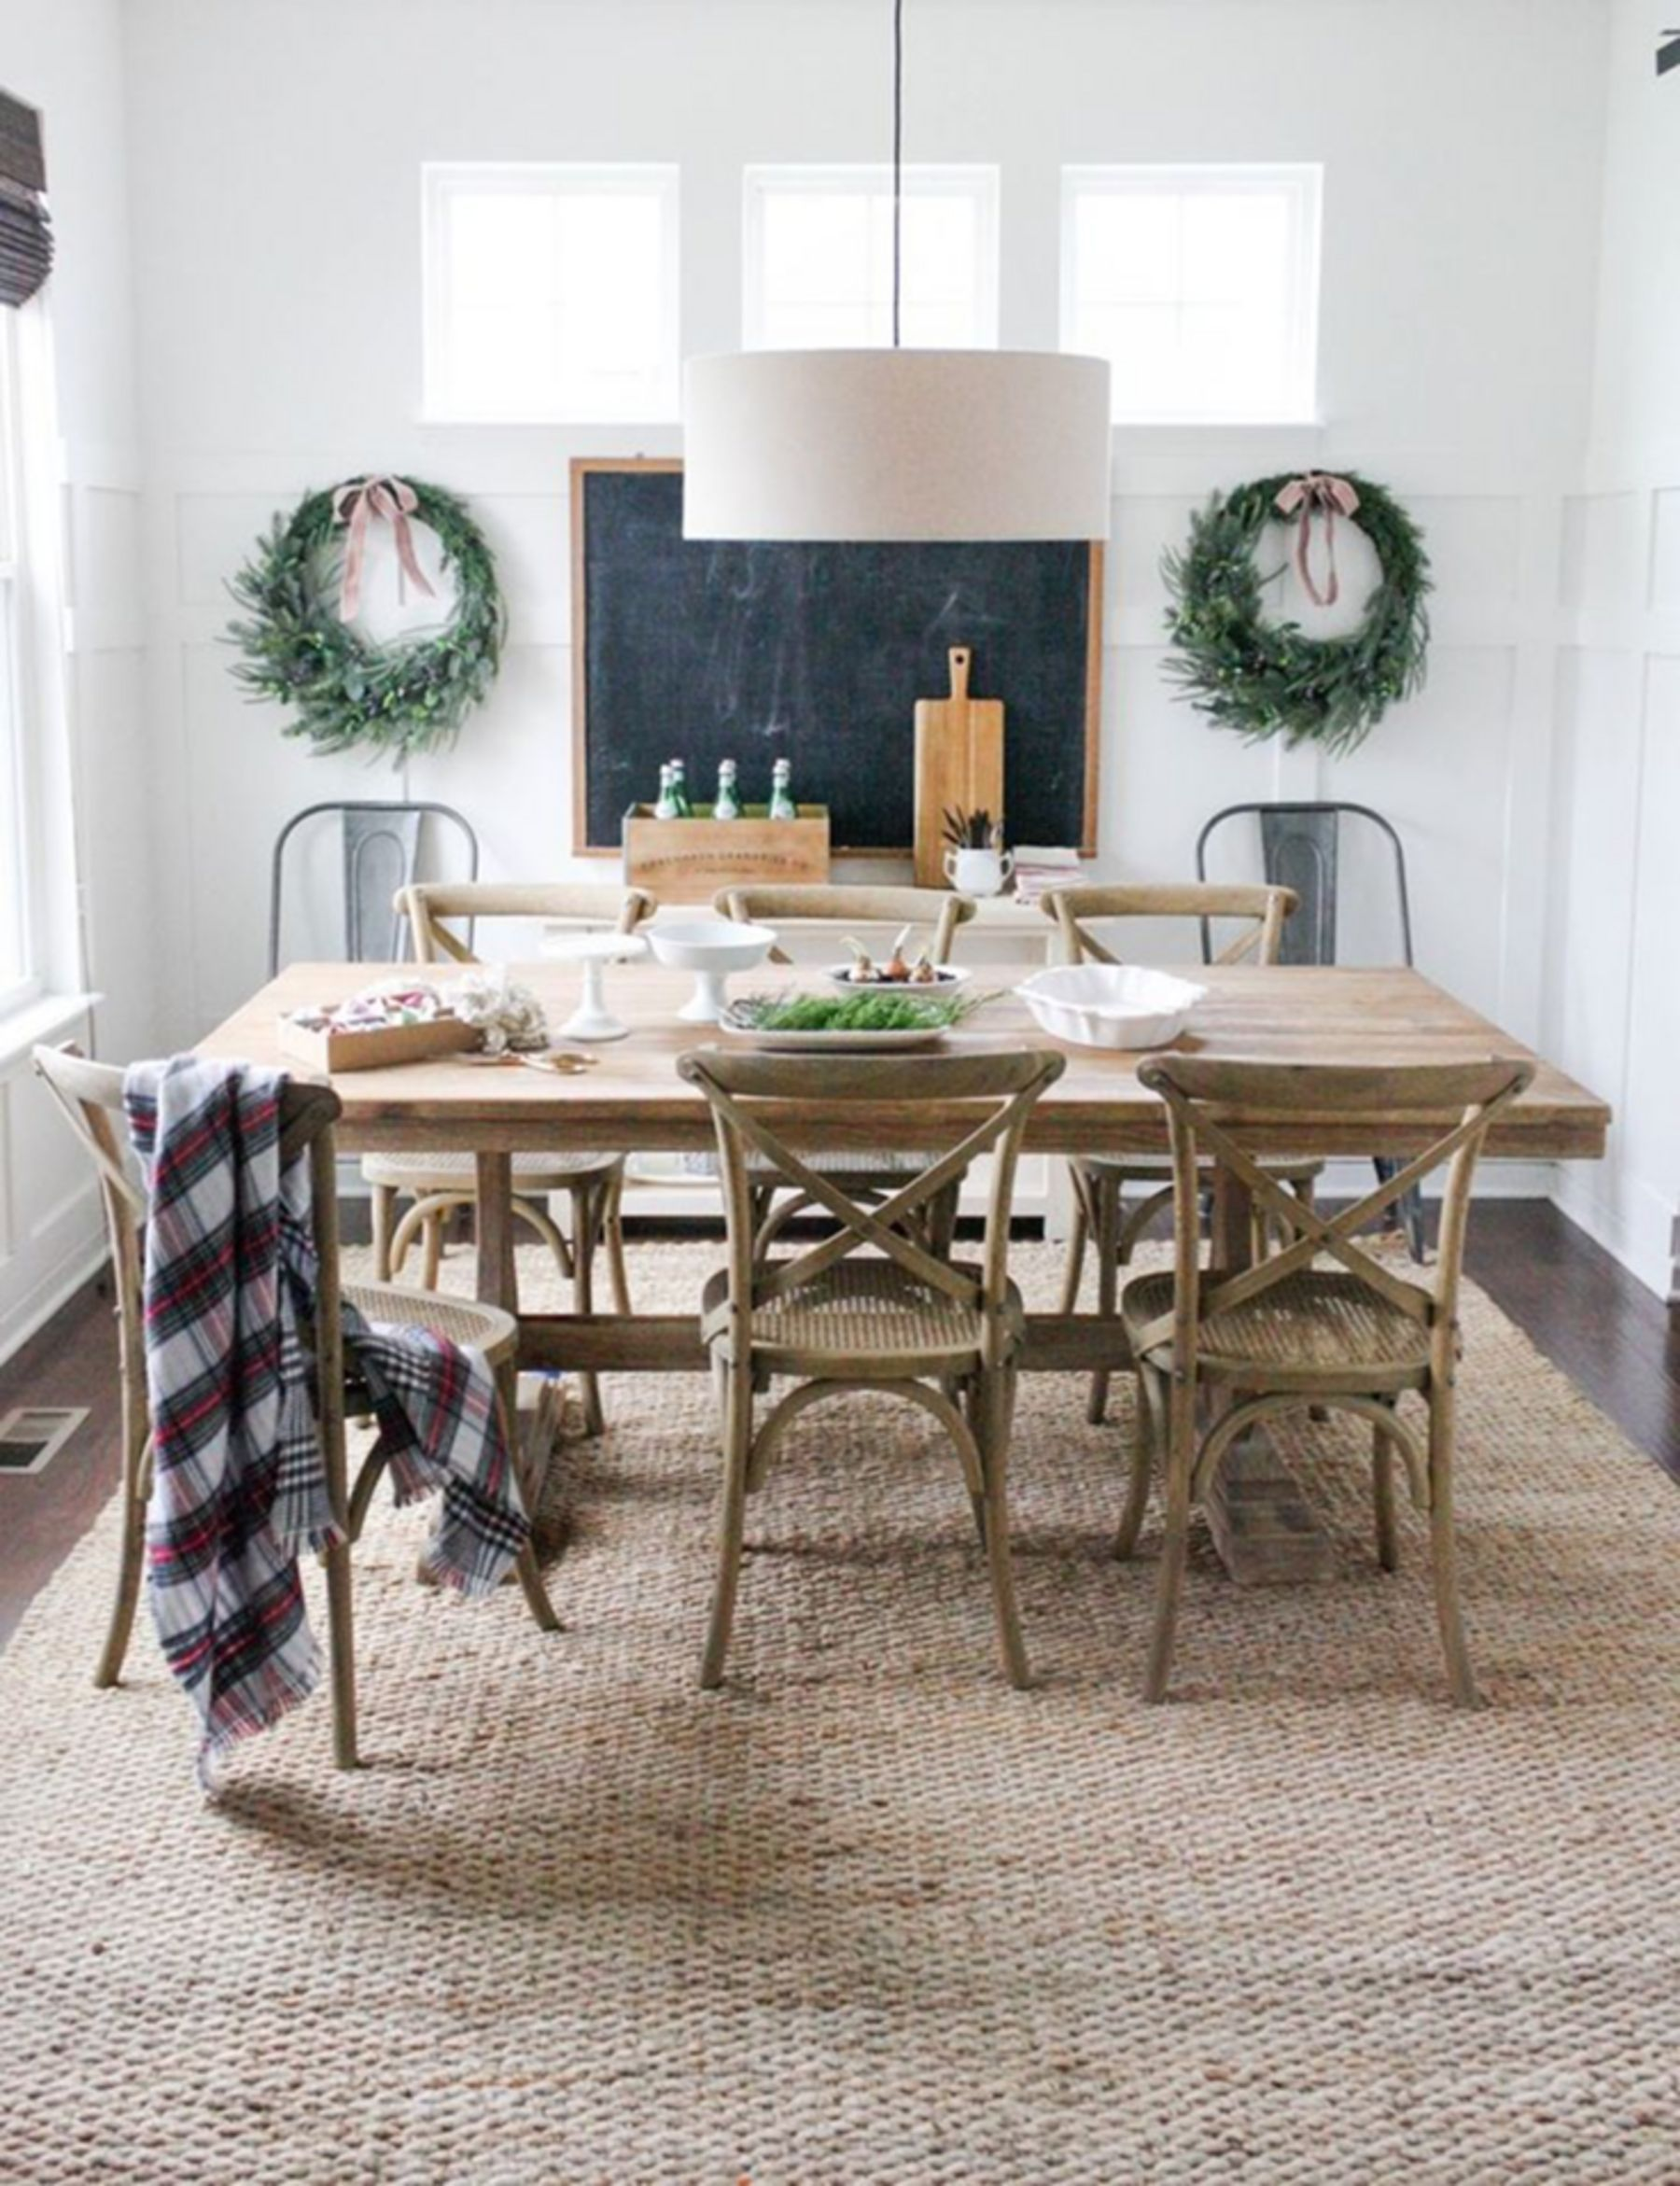 25 Lovely Modern Rugs Ideas For Your Dining Room In 2020 Dining